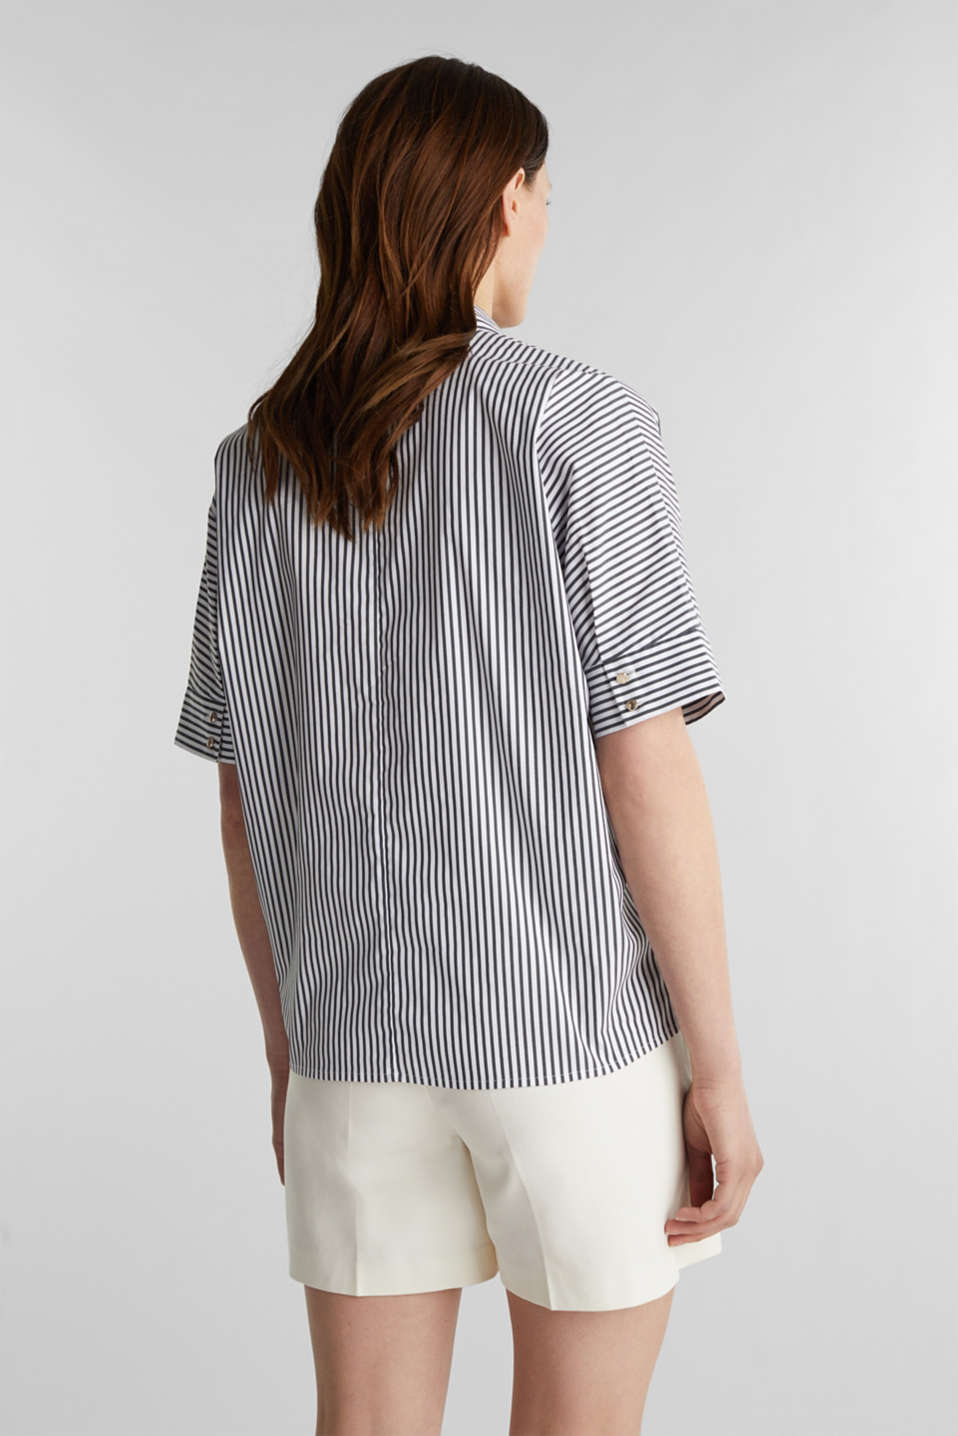 Striped slip-on blouse in a boxy fit, BLACK 2, detail image number 3